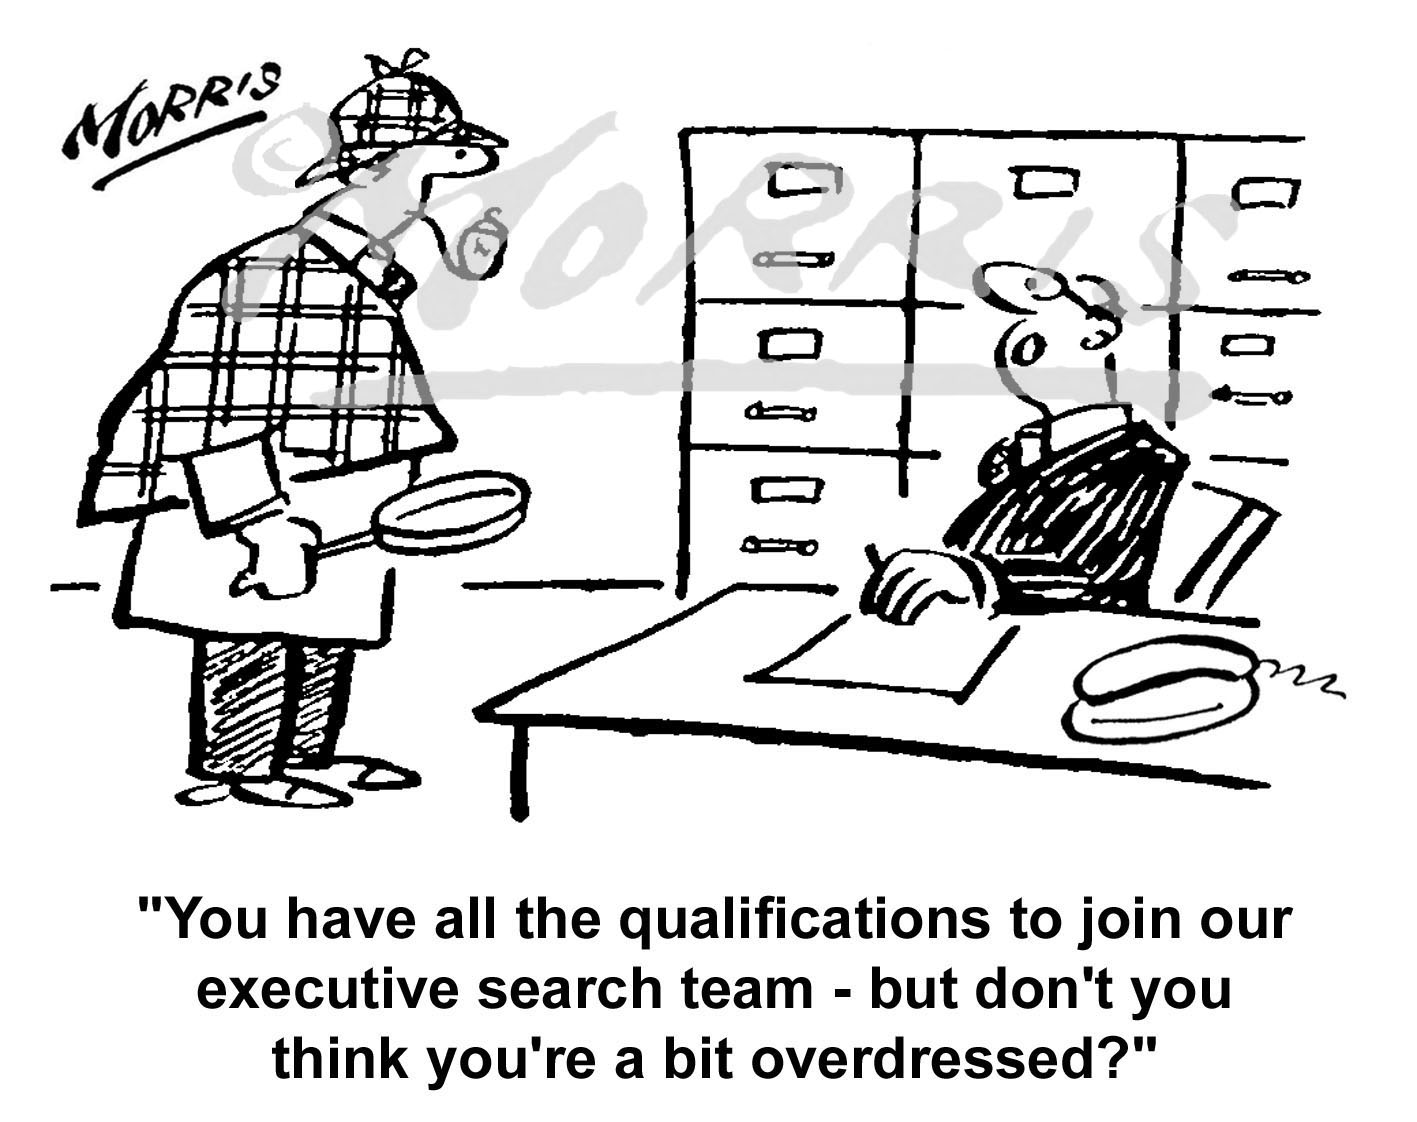 Executive search business cartoon Ref: 0431bw